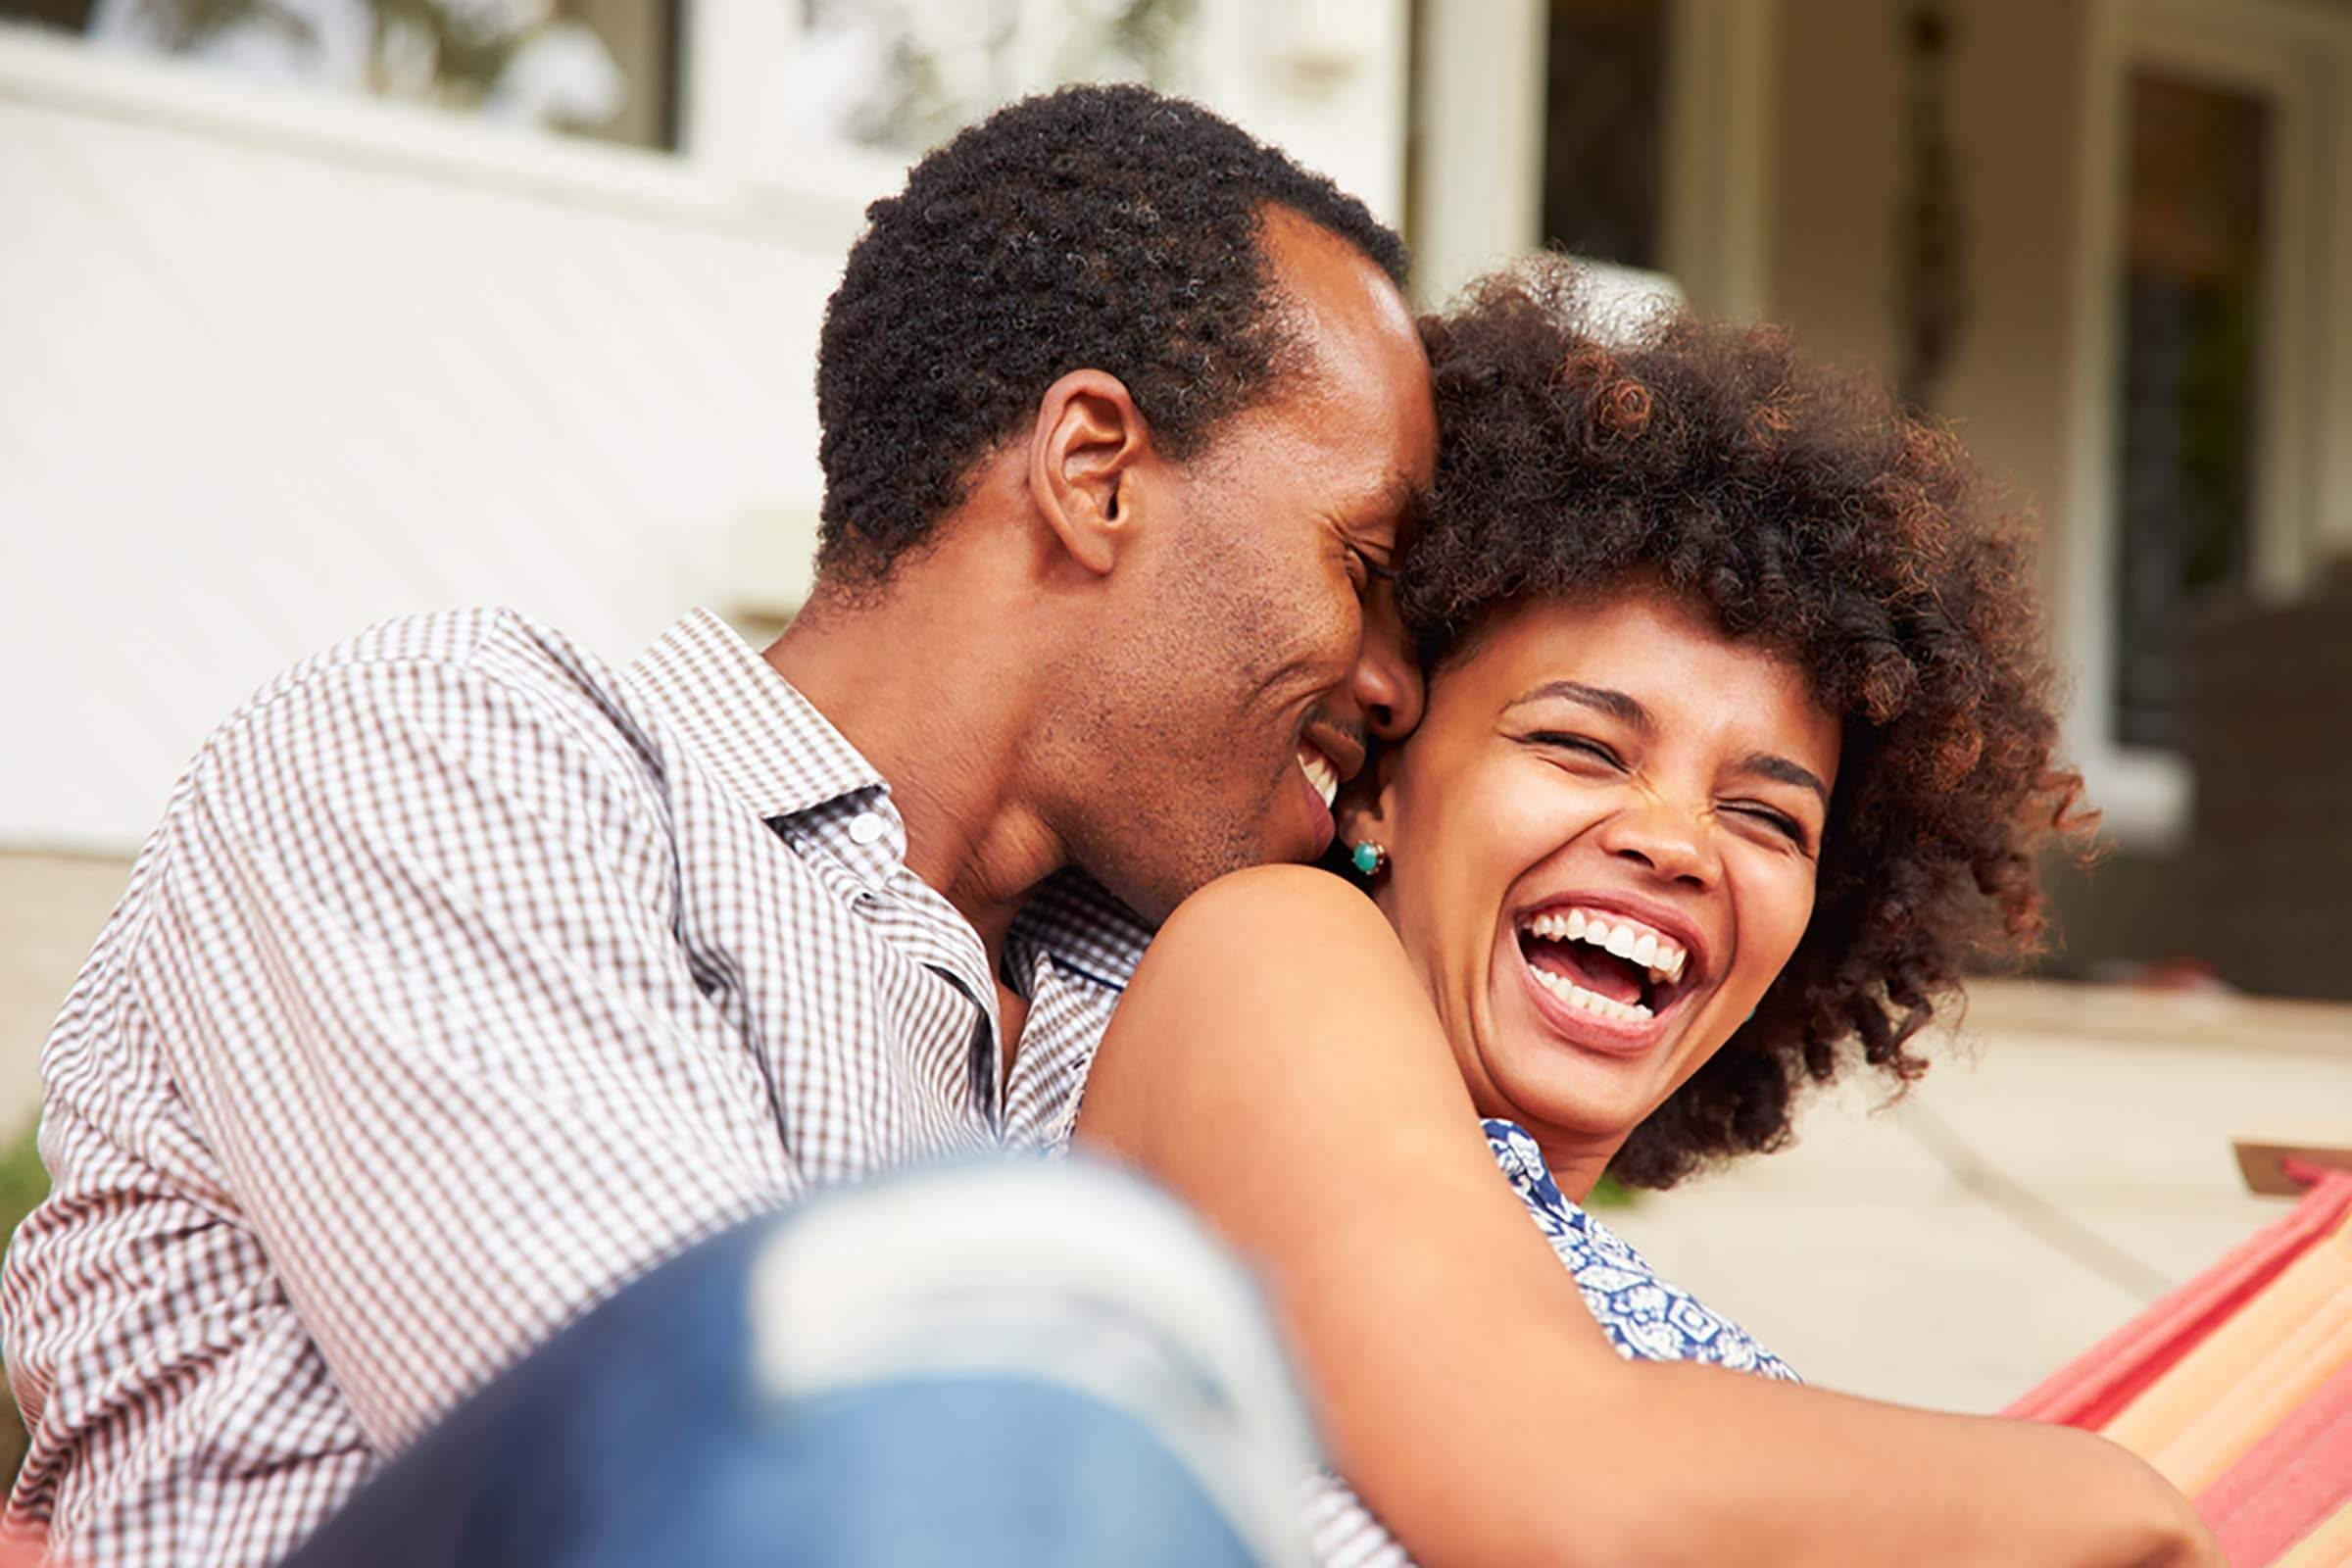 Daily Habits Of Couples In Healthy Relationships